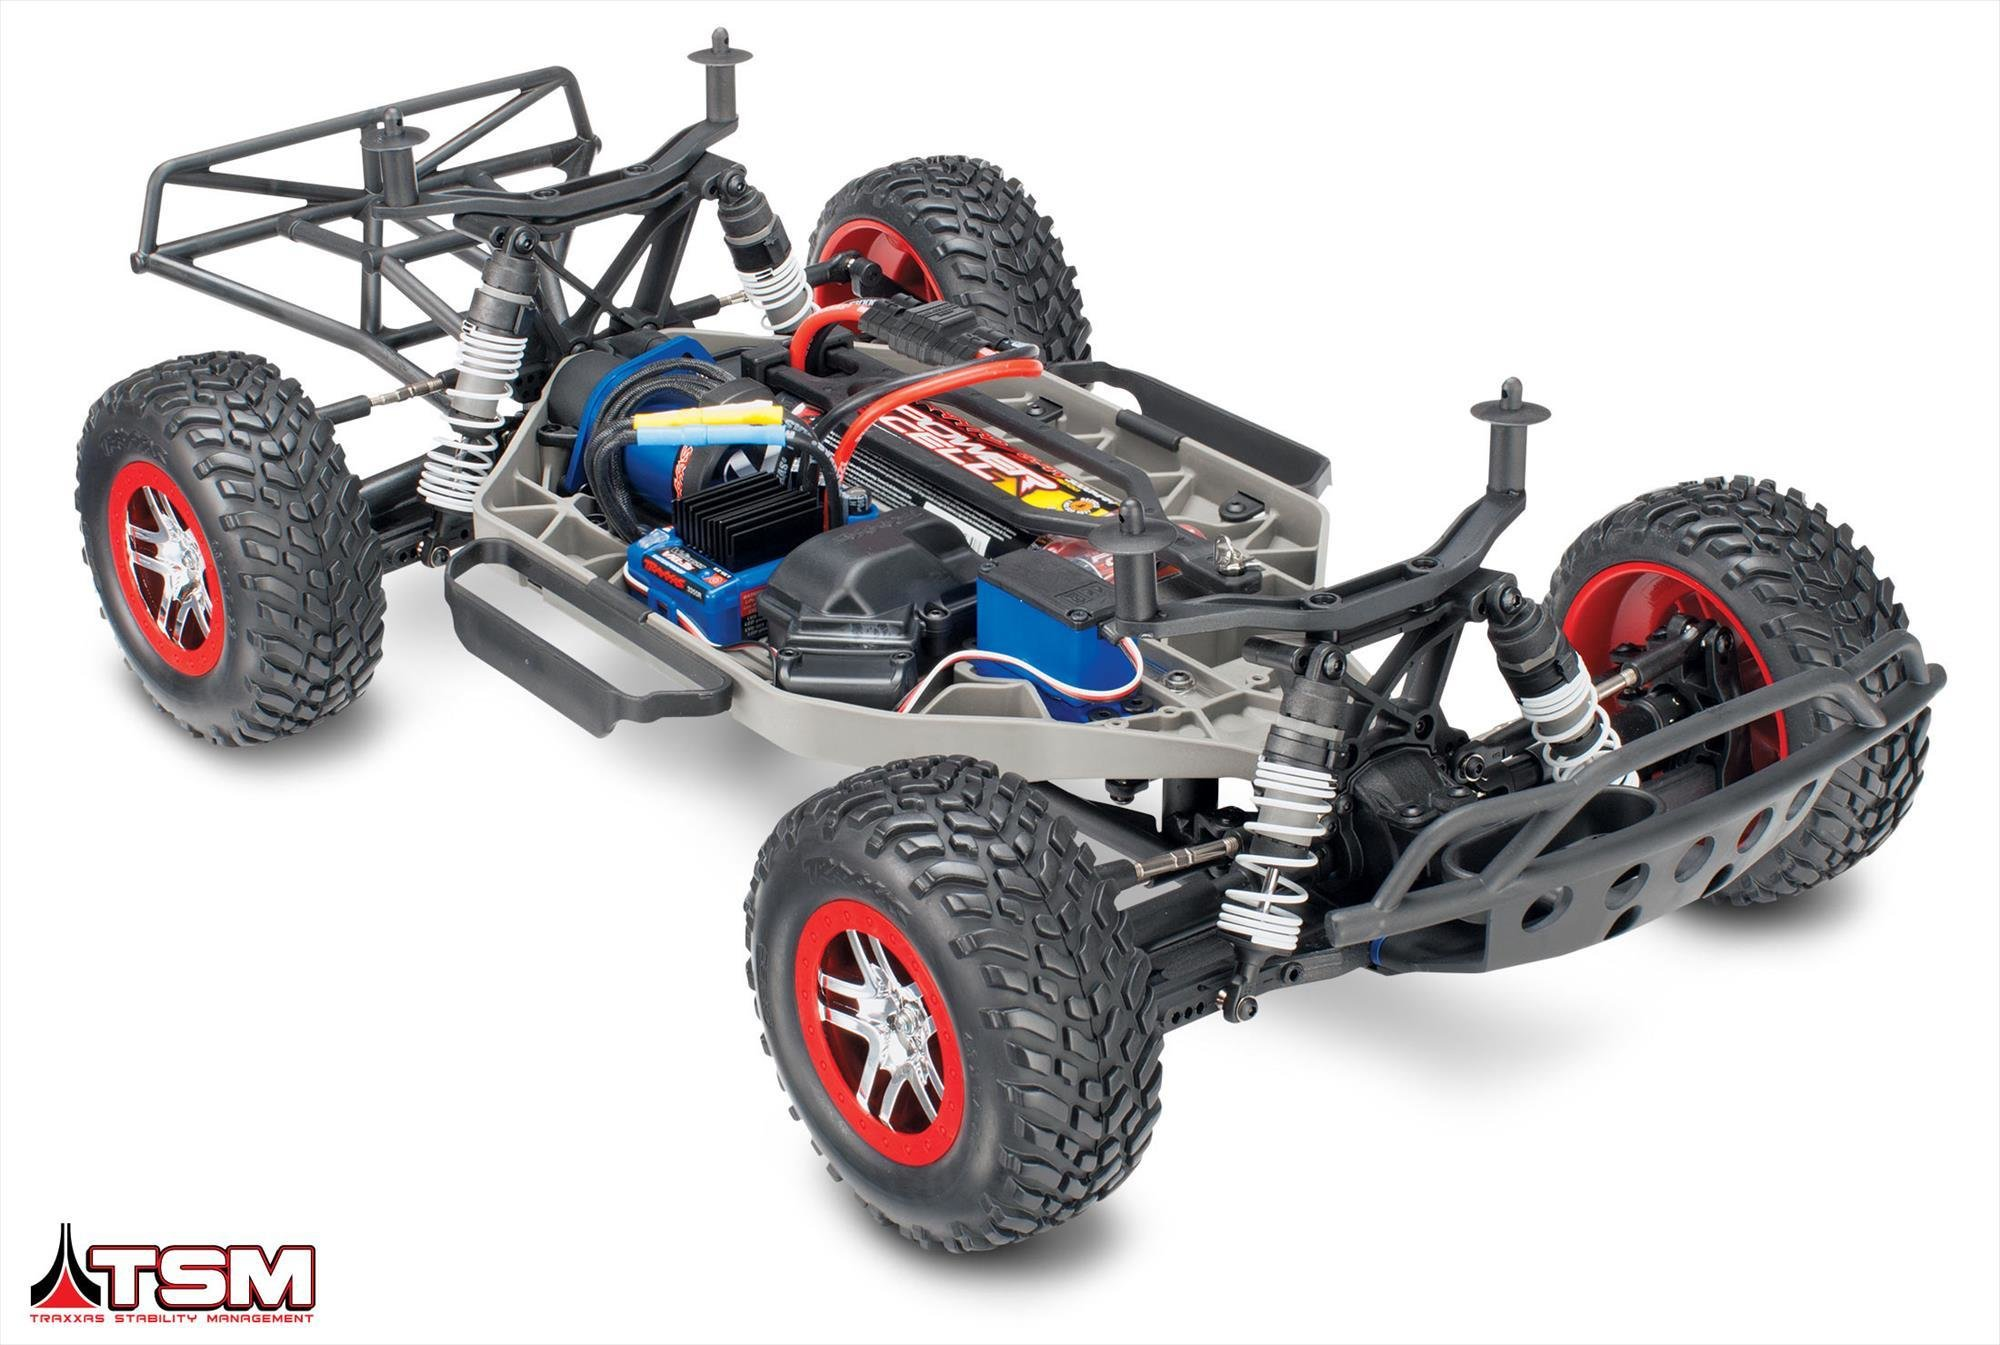 The Traxxas Slash defines the Short Course truck segment and sets the standard for durability performance and technology Innovative features like Traxxas